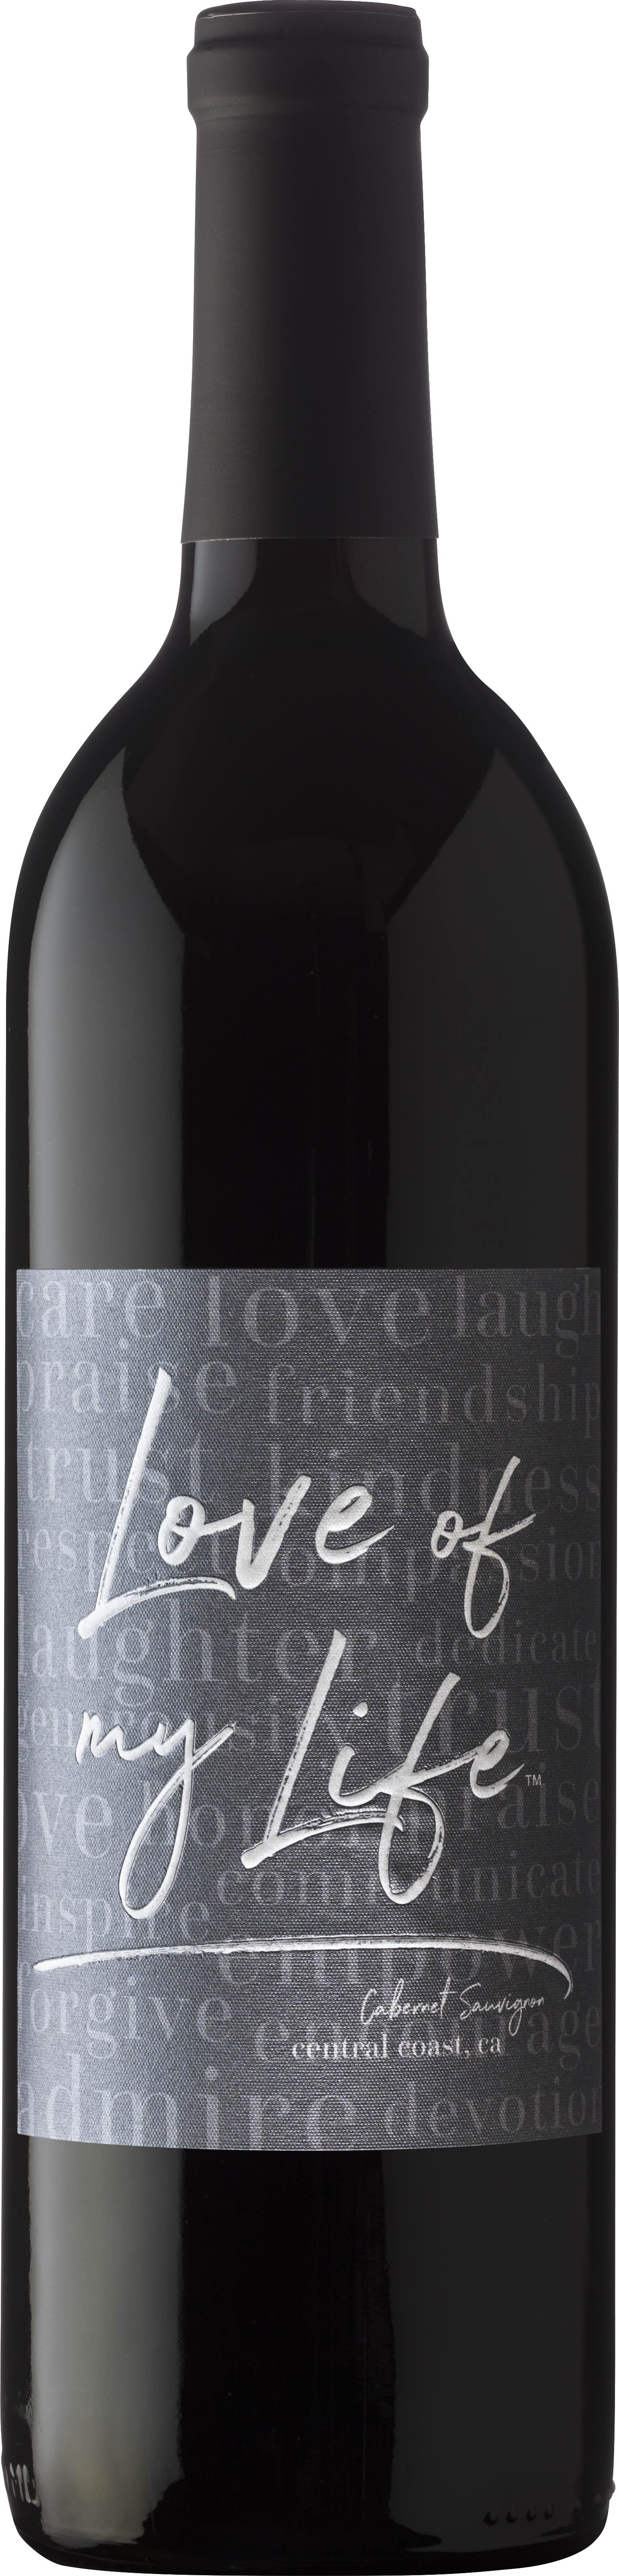 "Love Of My Life - Cabernet Sauvignon, often called the ""king of red grapes"" has a rich deep color with ripe berry aromas and blackberry with pepper notes.  It has moderate tannins and a lush mouthfeel with a toasty finish.PAIR WITH:Beef, Lamb, Pork, Venison, Duck, Cheddar Cheese, Pears, Peaches.GIFTING:Wedding ProposalWedding ShowersWeddingRehearsal DinnerCommitment CeremonyValentines DayBirthdayBirth of a babyAnniversary"